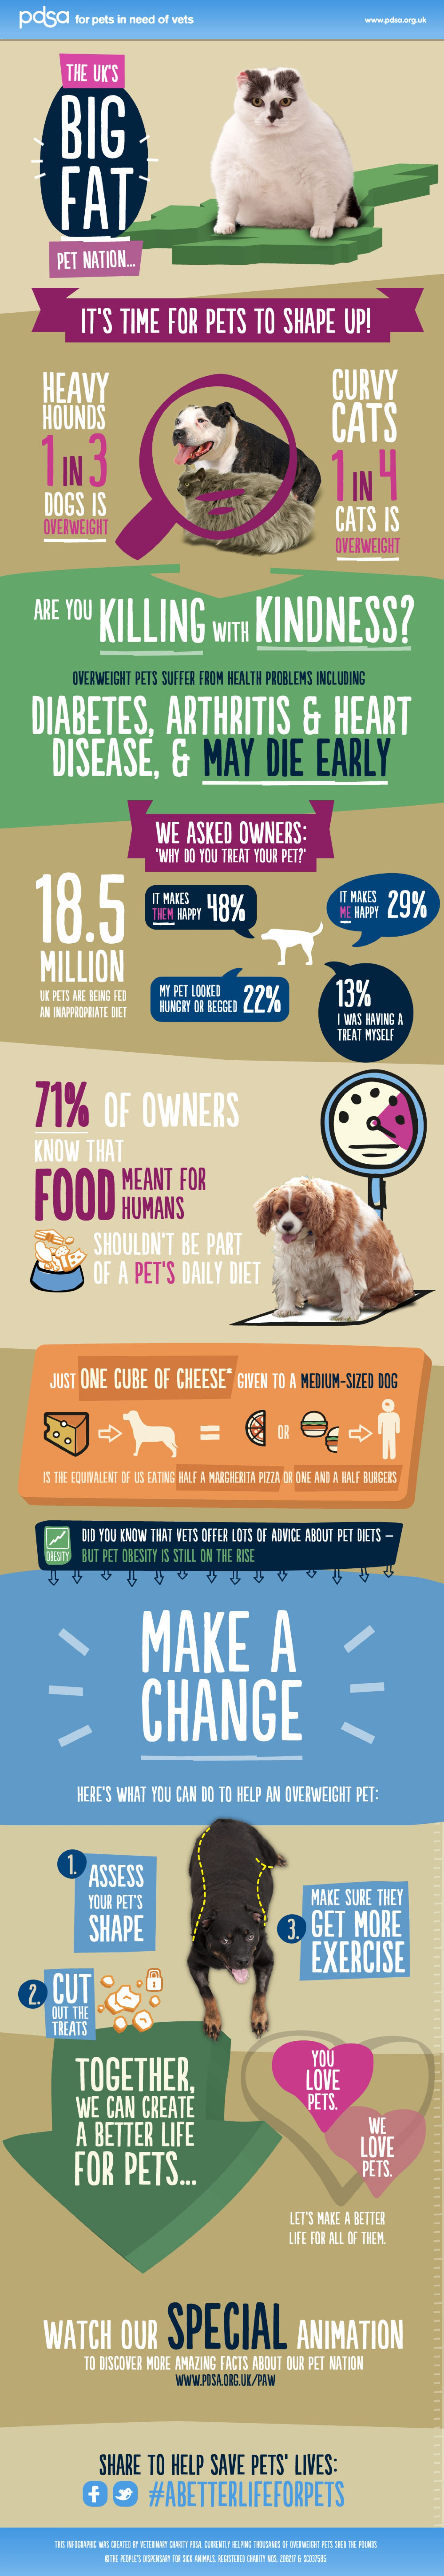 4. Big Fat Pet Nation Obese Pets in The UK Facts